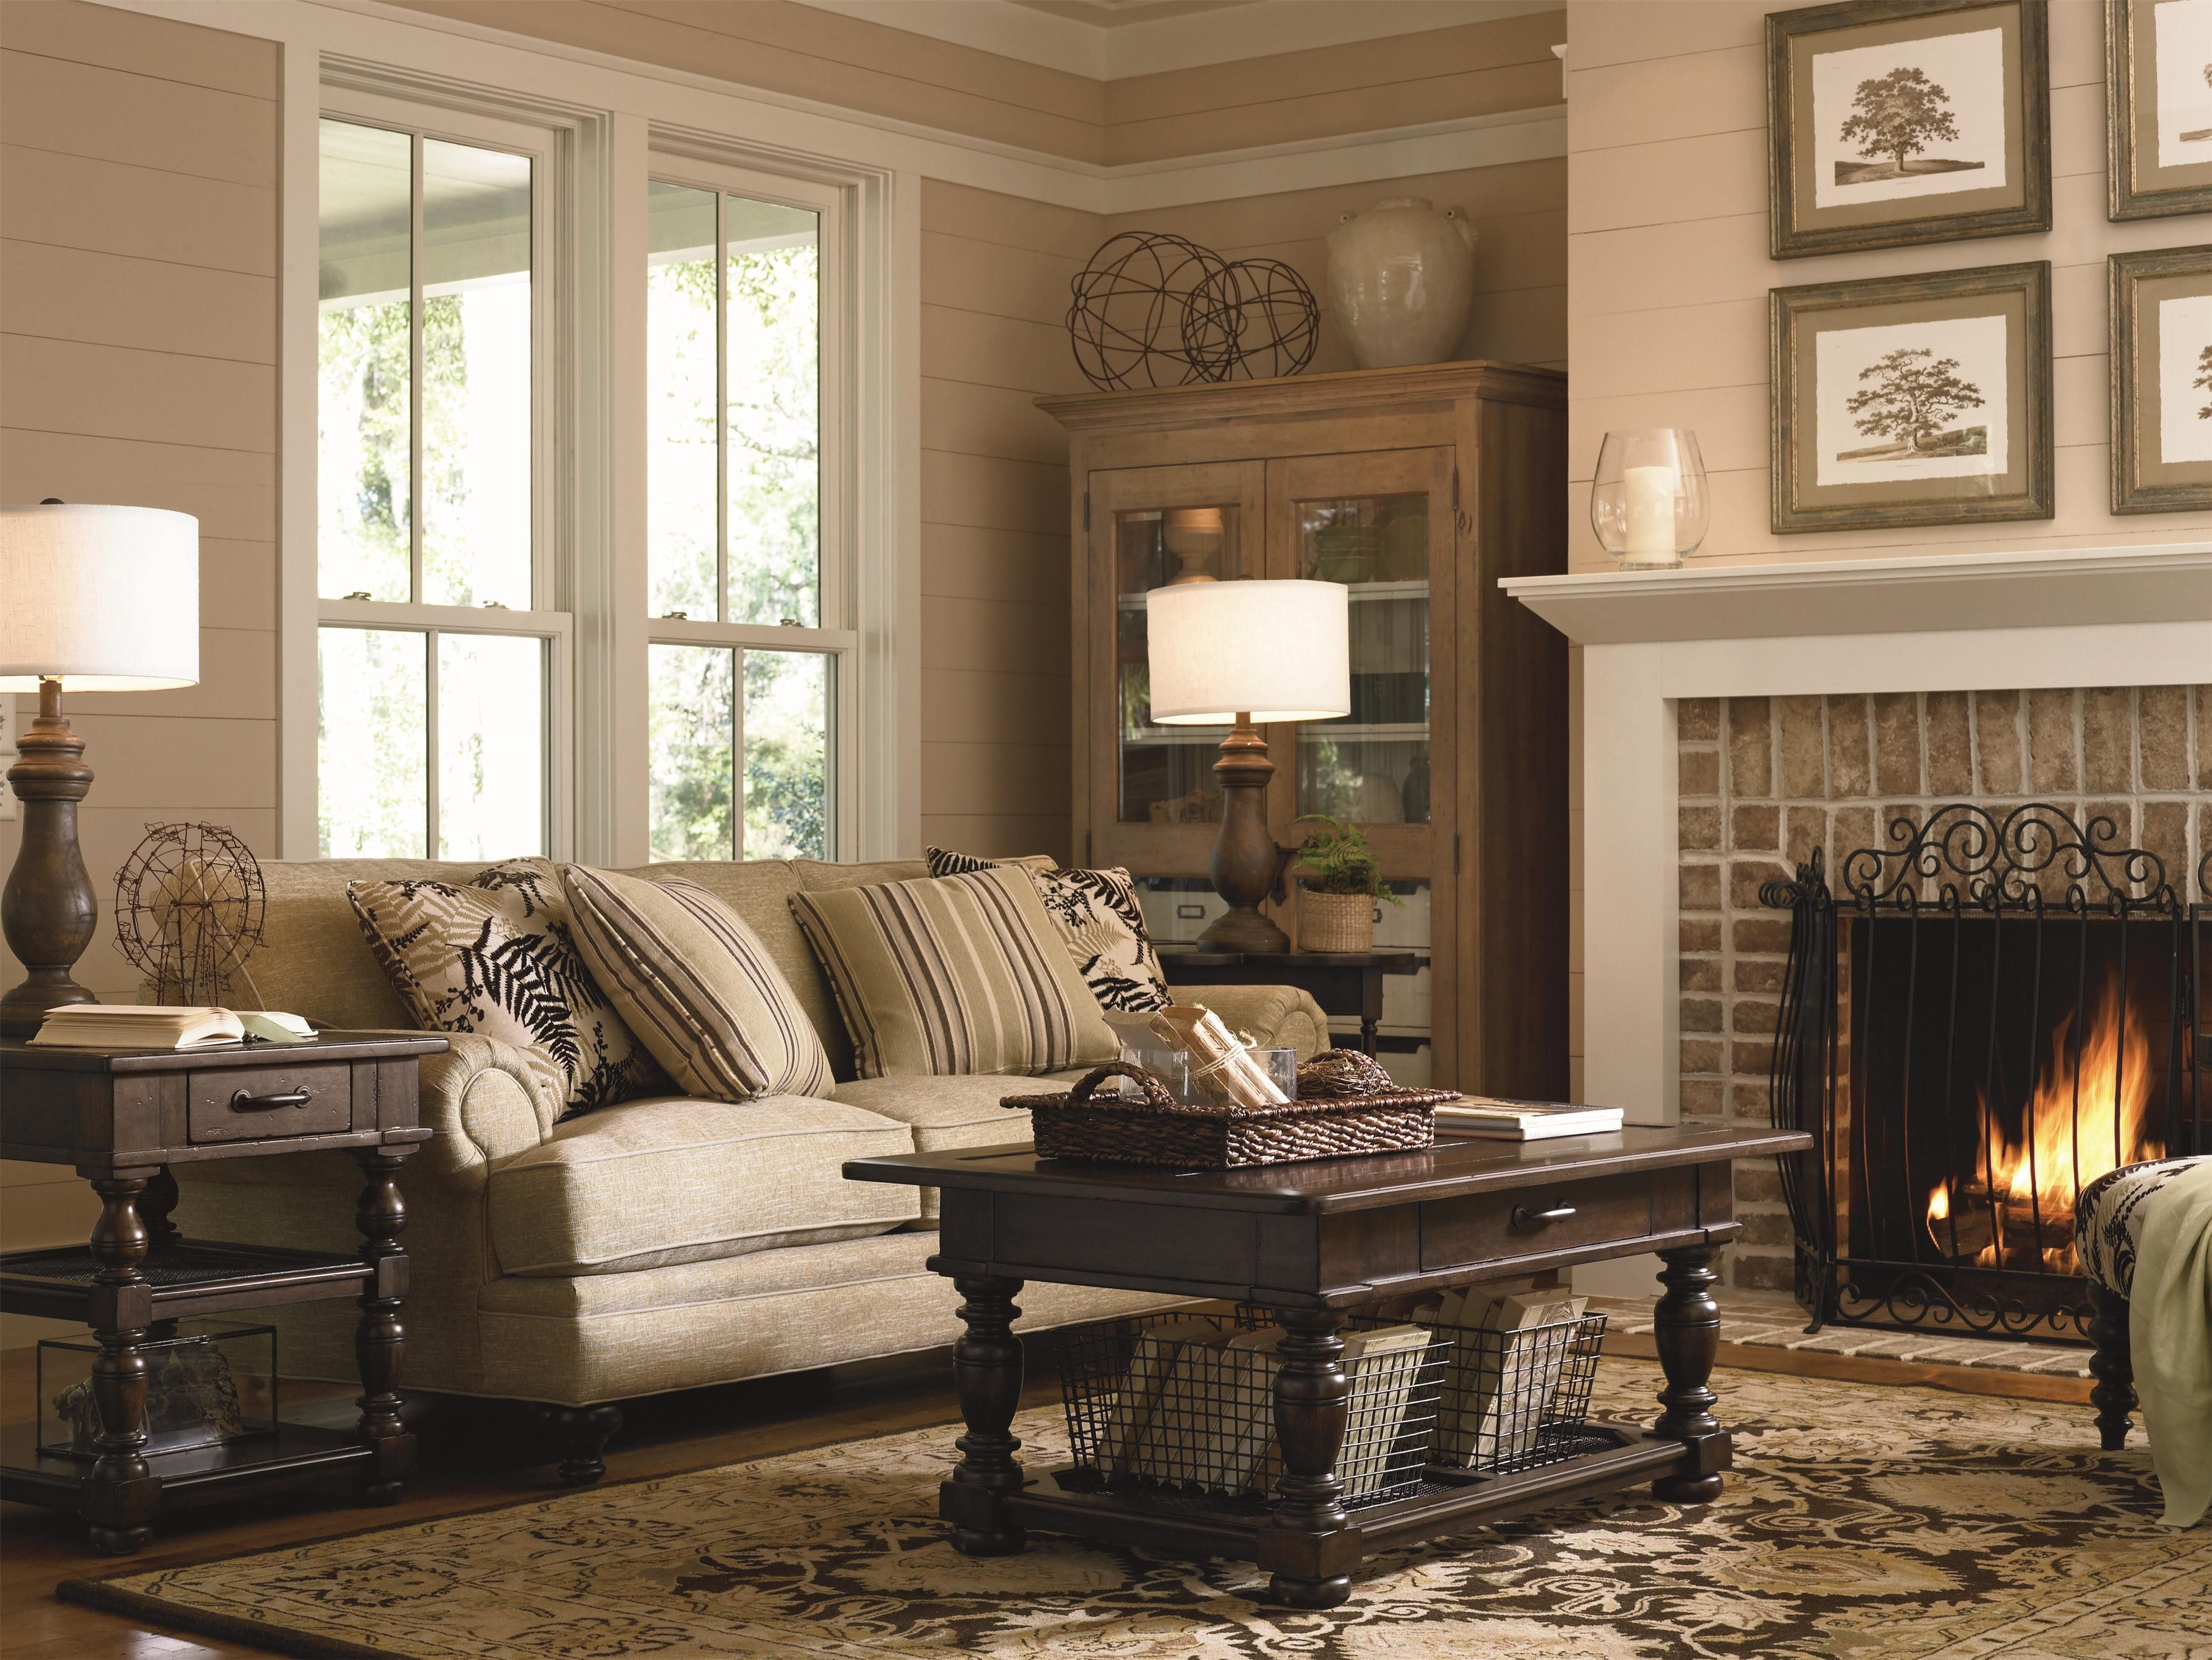 Universal Furniture Paula Deen Down Home Occasional Living Room Coffee Table Set In Moles 193